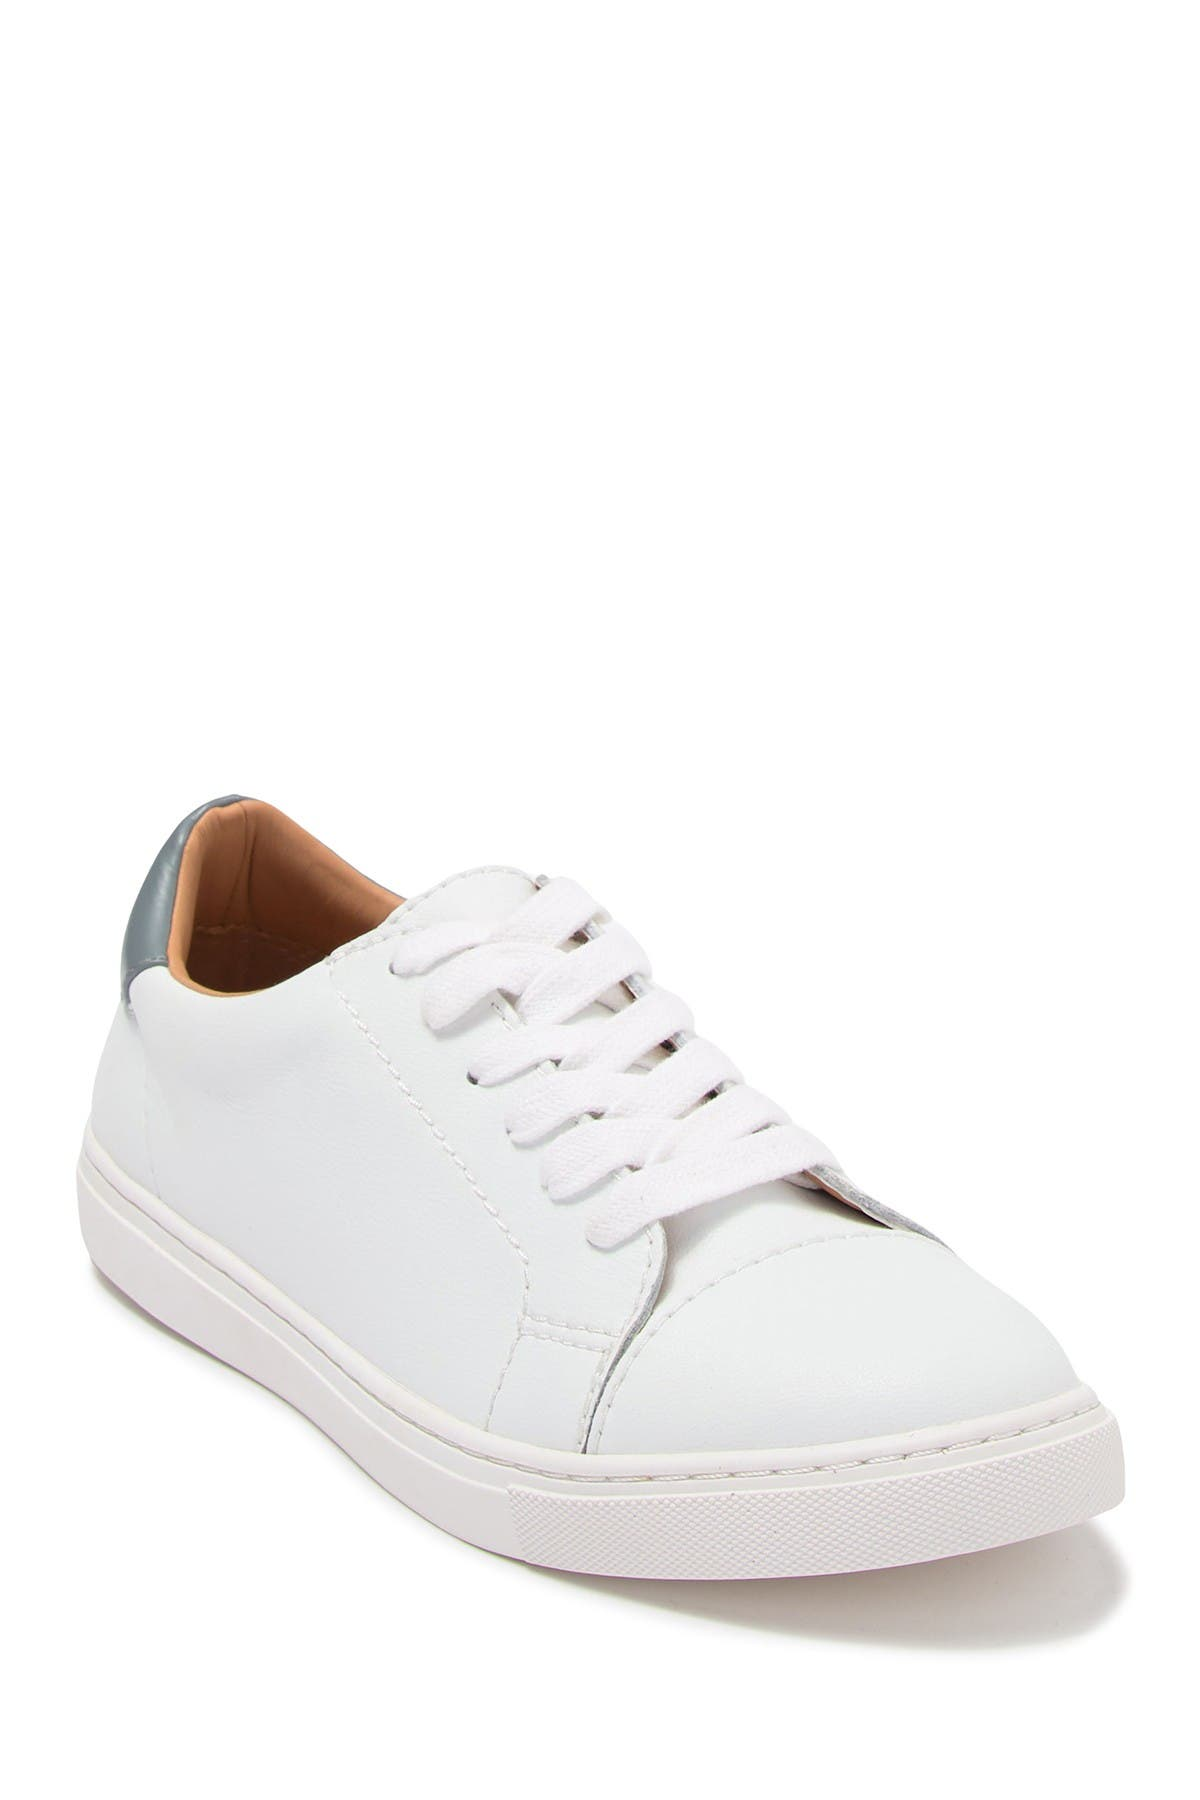 Image of 14th & Union Solla Leather Sneaker